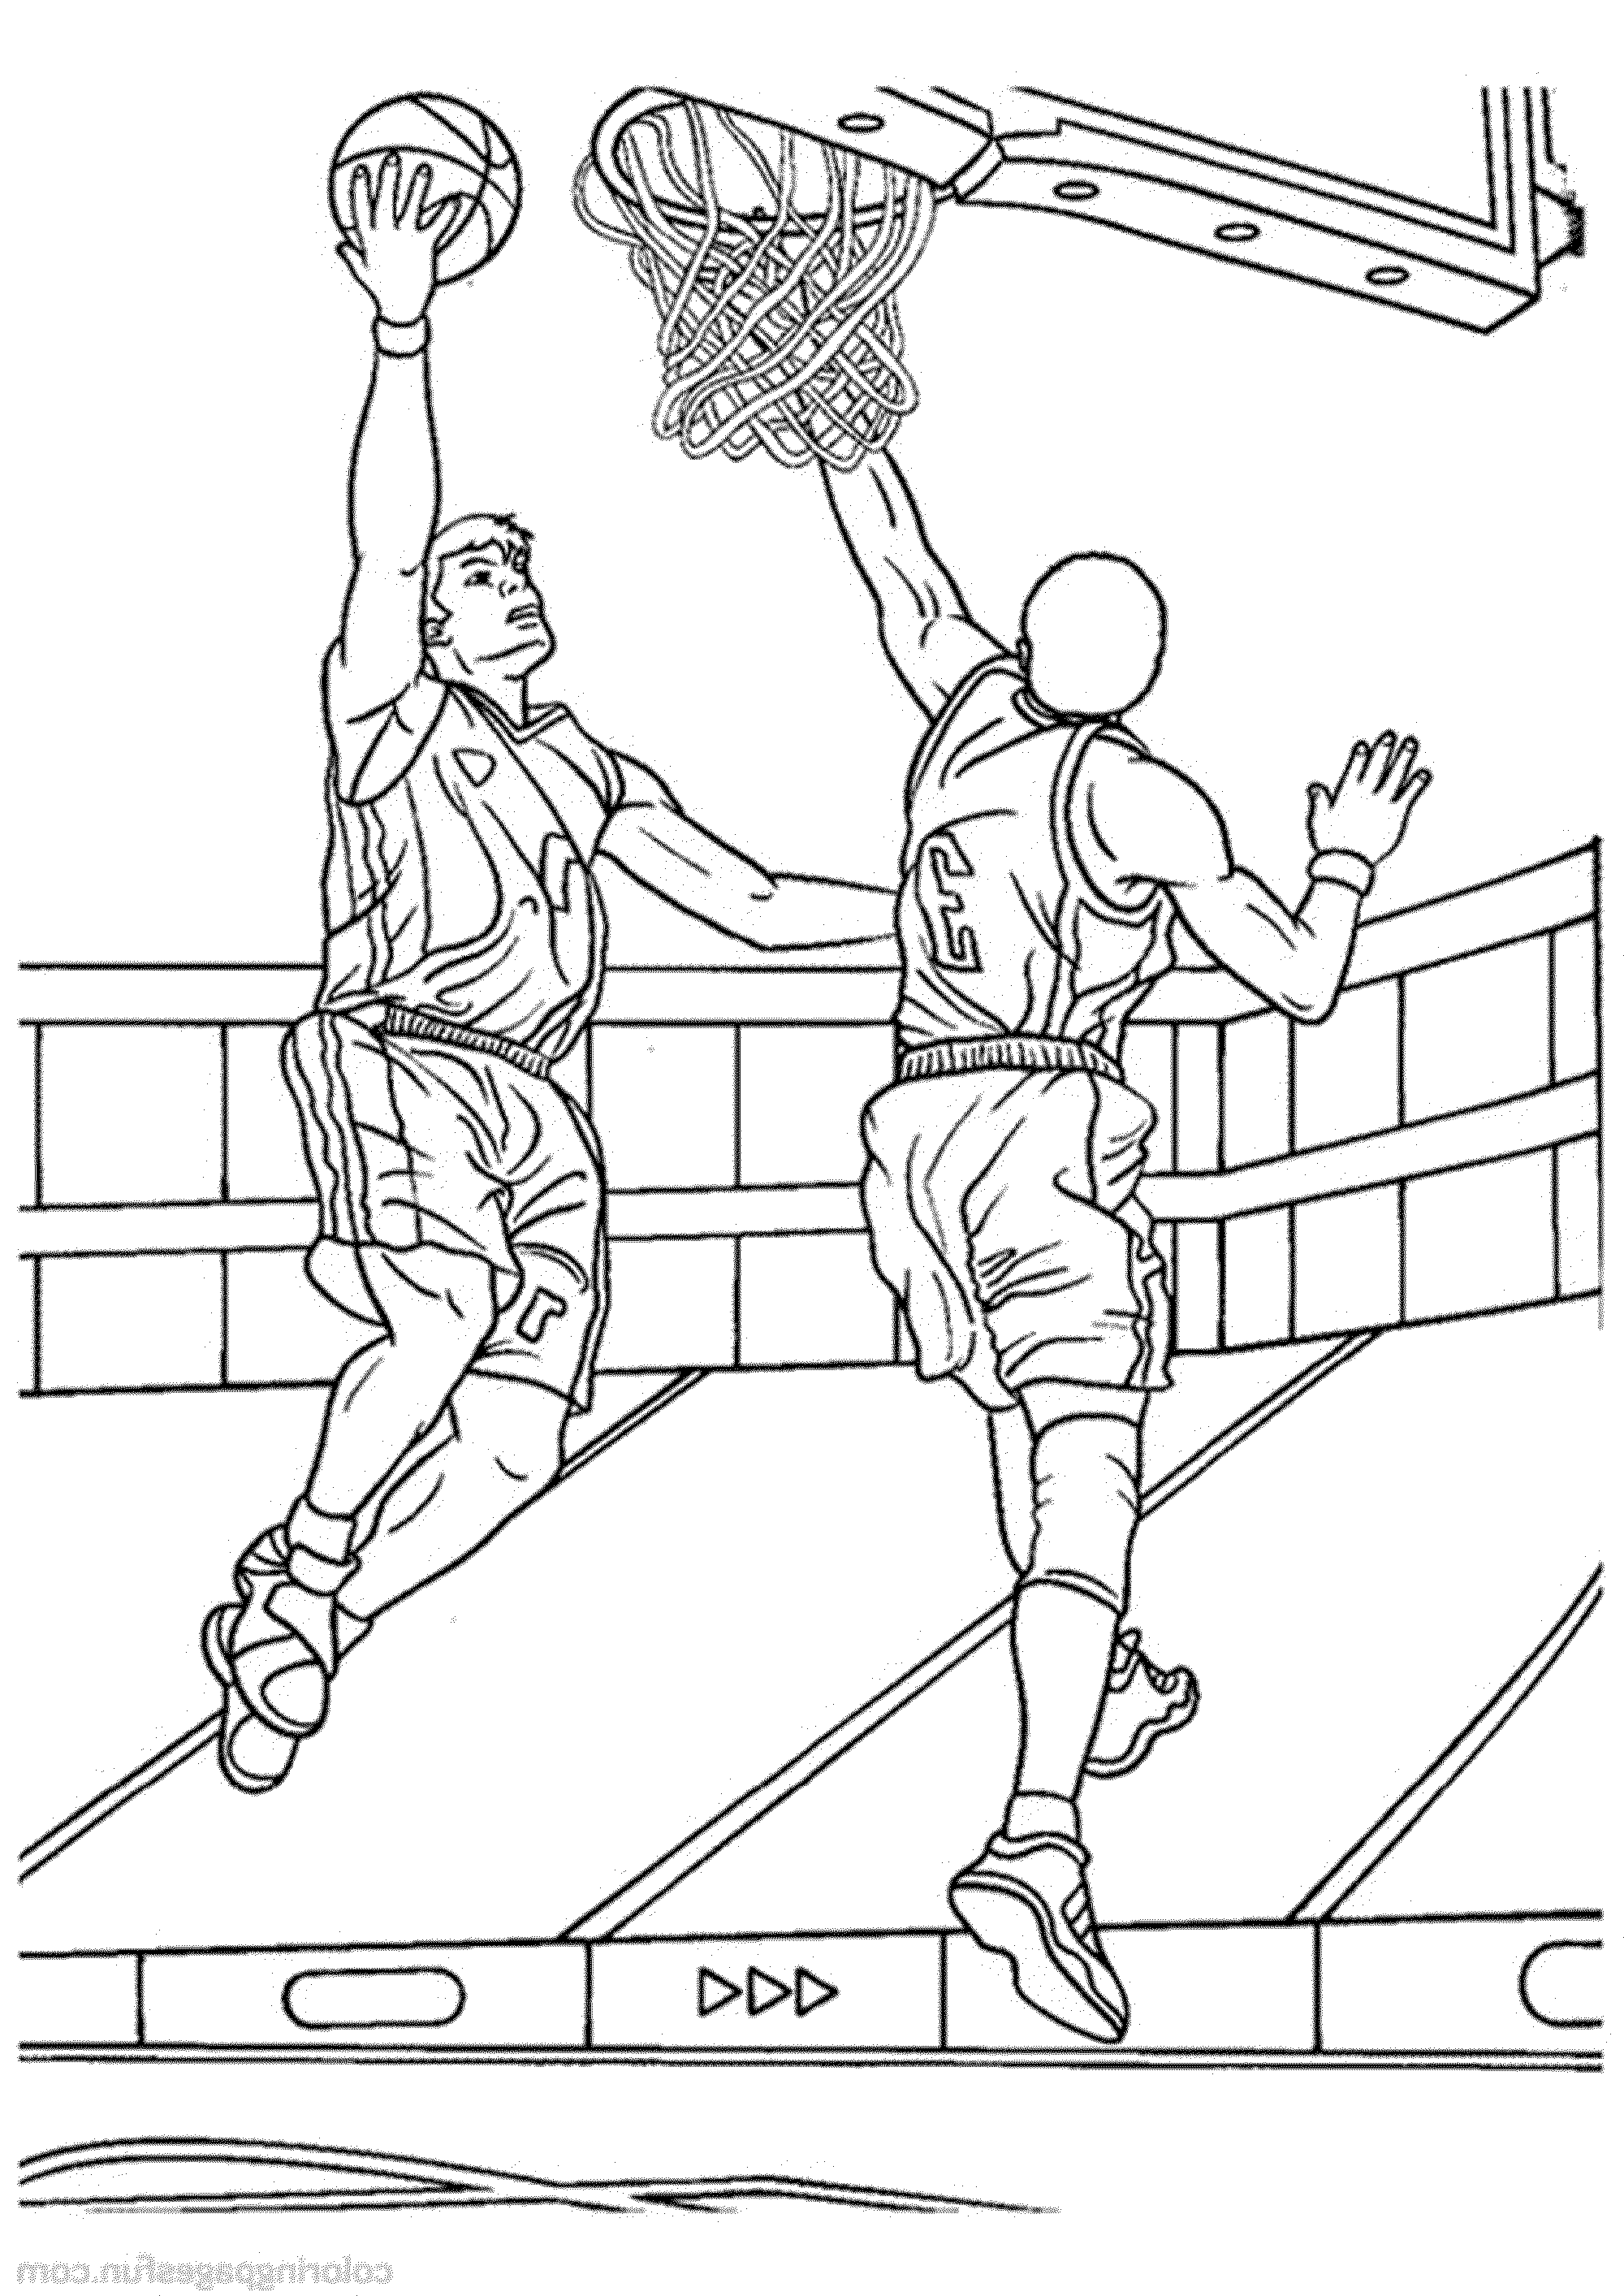 2000x2827 Simplistic College Basketball Coloring Pages Print Download